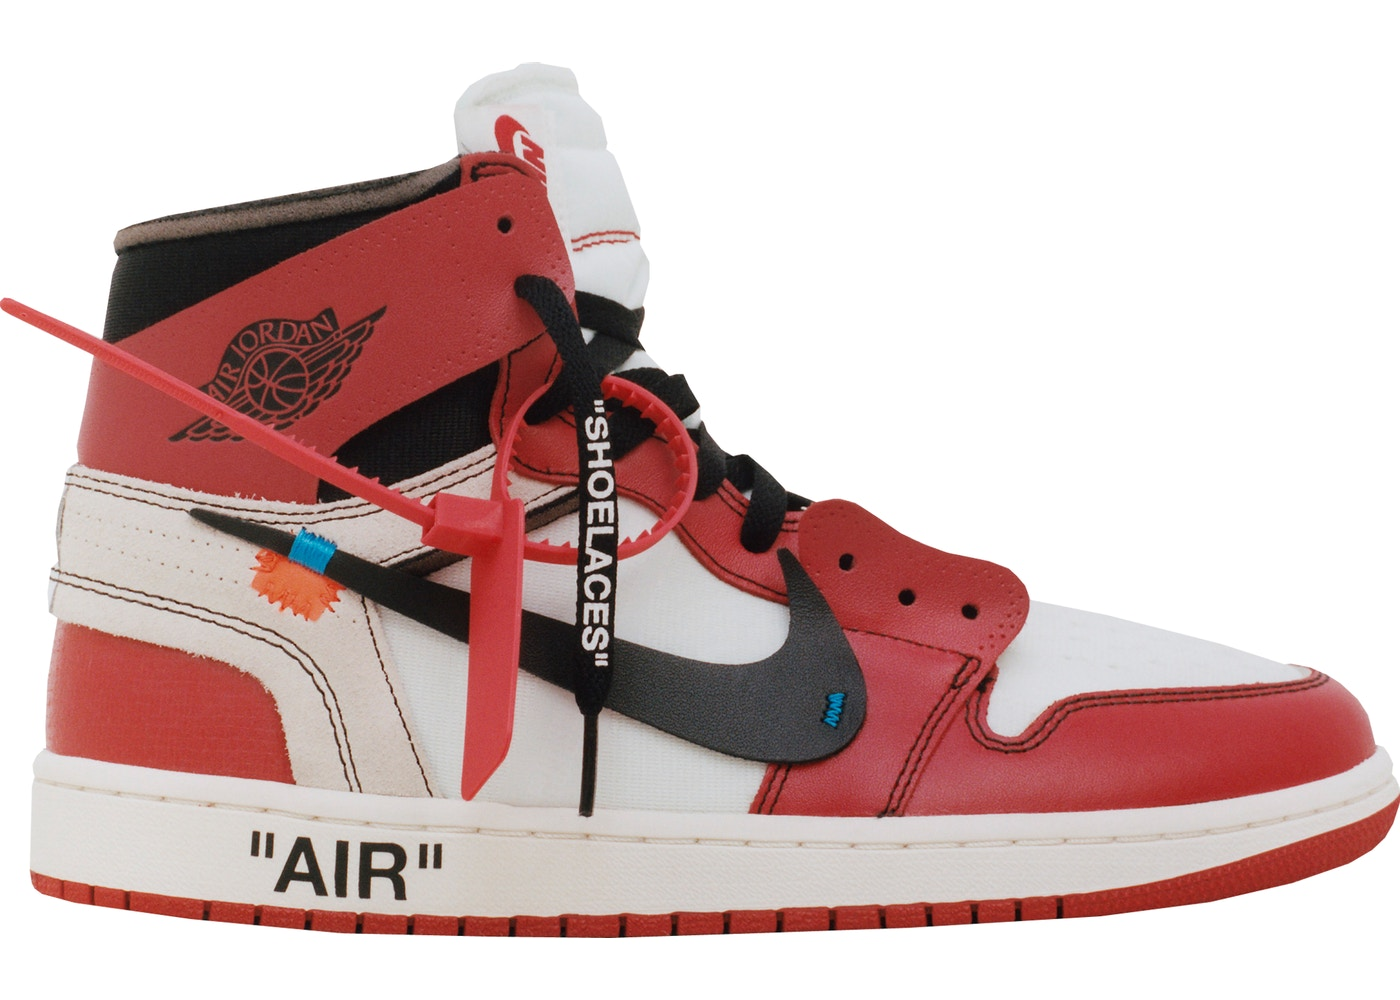 Re-StockX Promo Jordan 1 Retro High Off-White Chicago - AA3834-101 bbb8947a5f